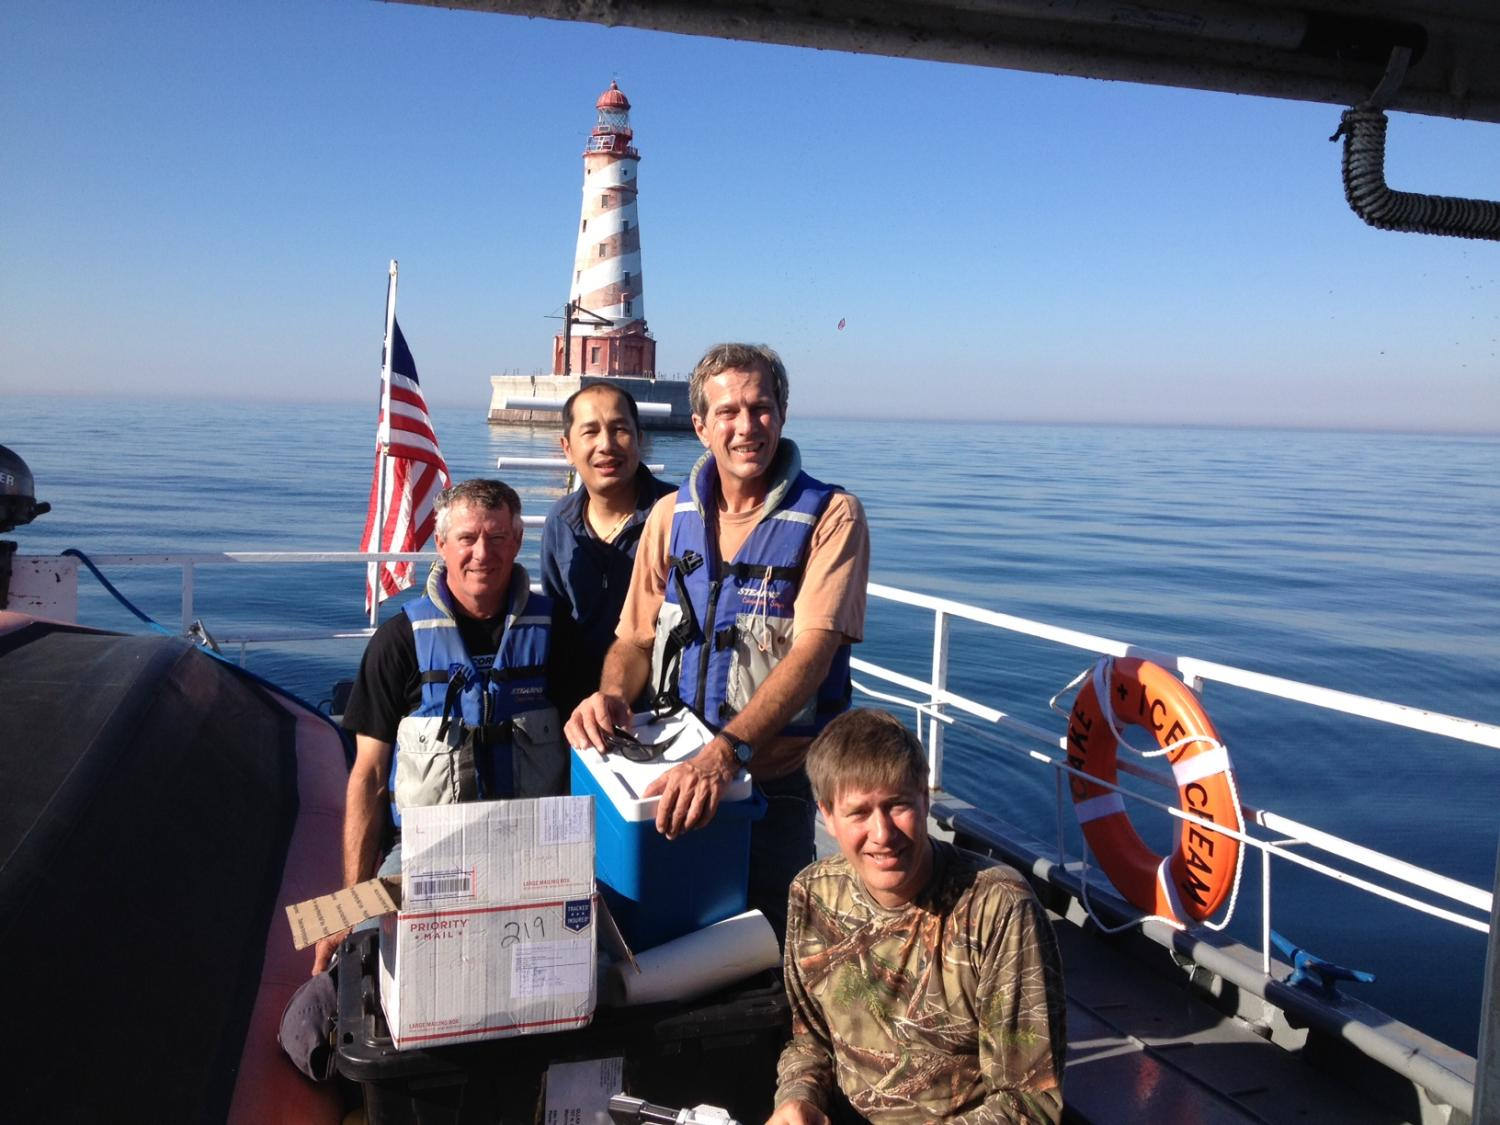 4 men on deck of boat in front of a lighthouse posing for photo